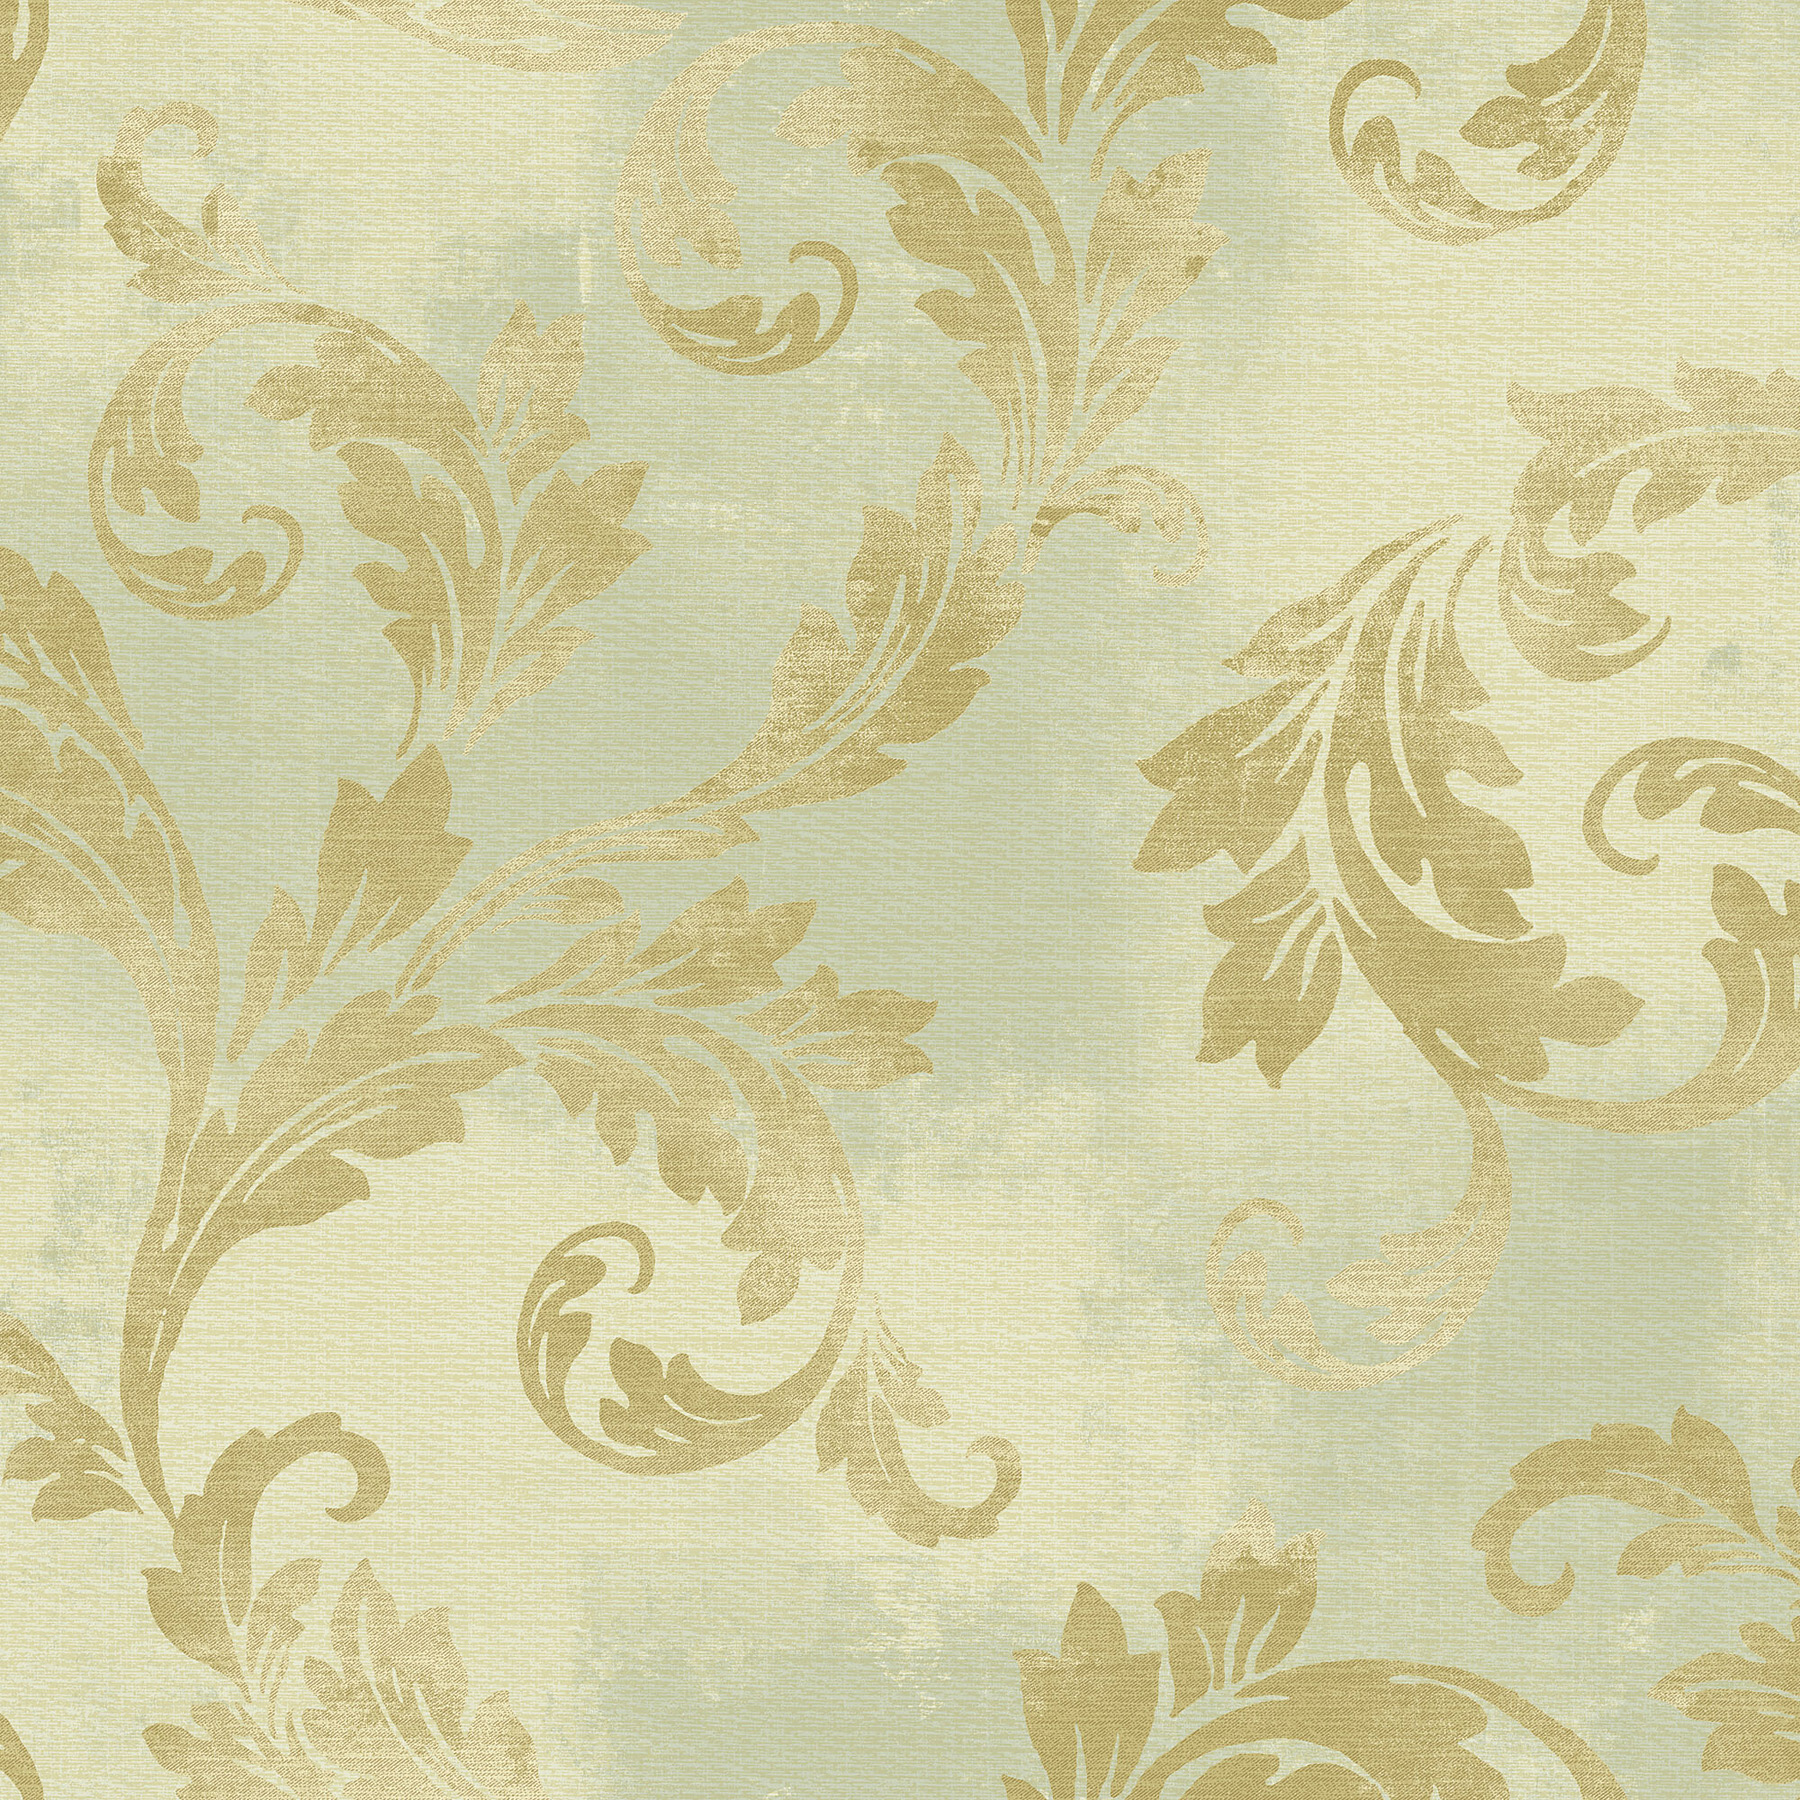 Picture of Bronze Clean Acanthus Leaf Scroll Wallpaper